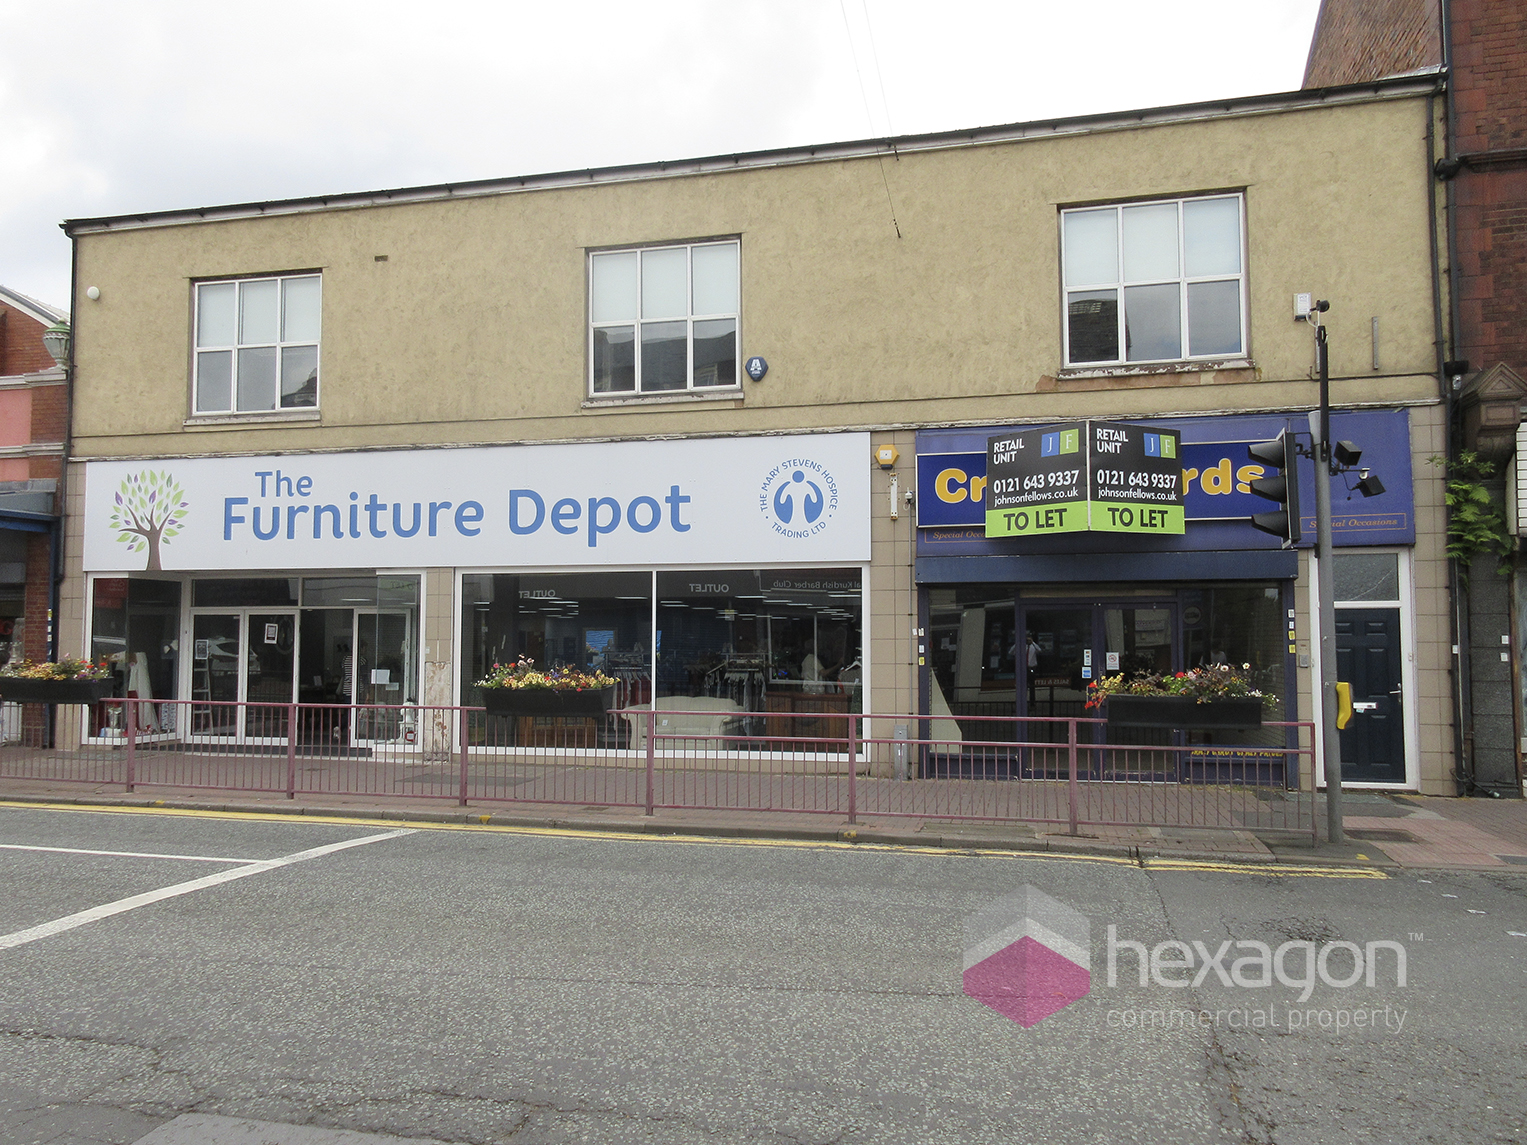 0 bed Office for rent in Brierley Hill. From Hexagon Commercial Property